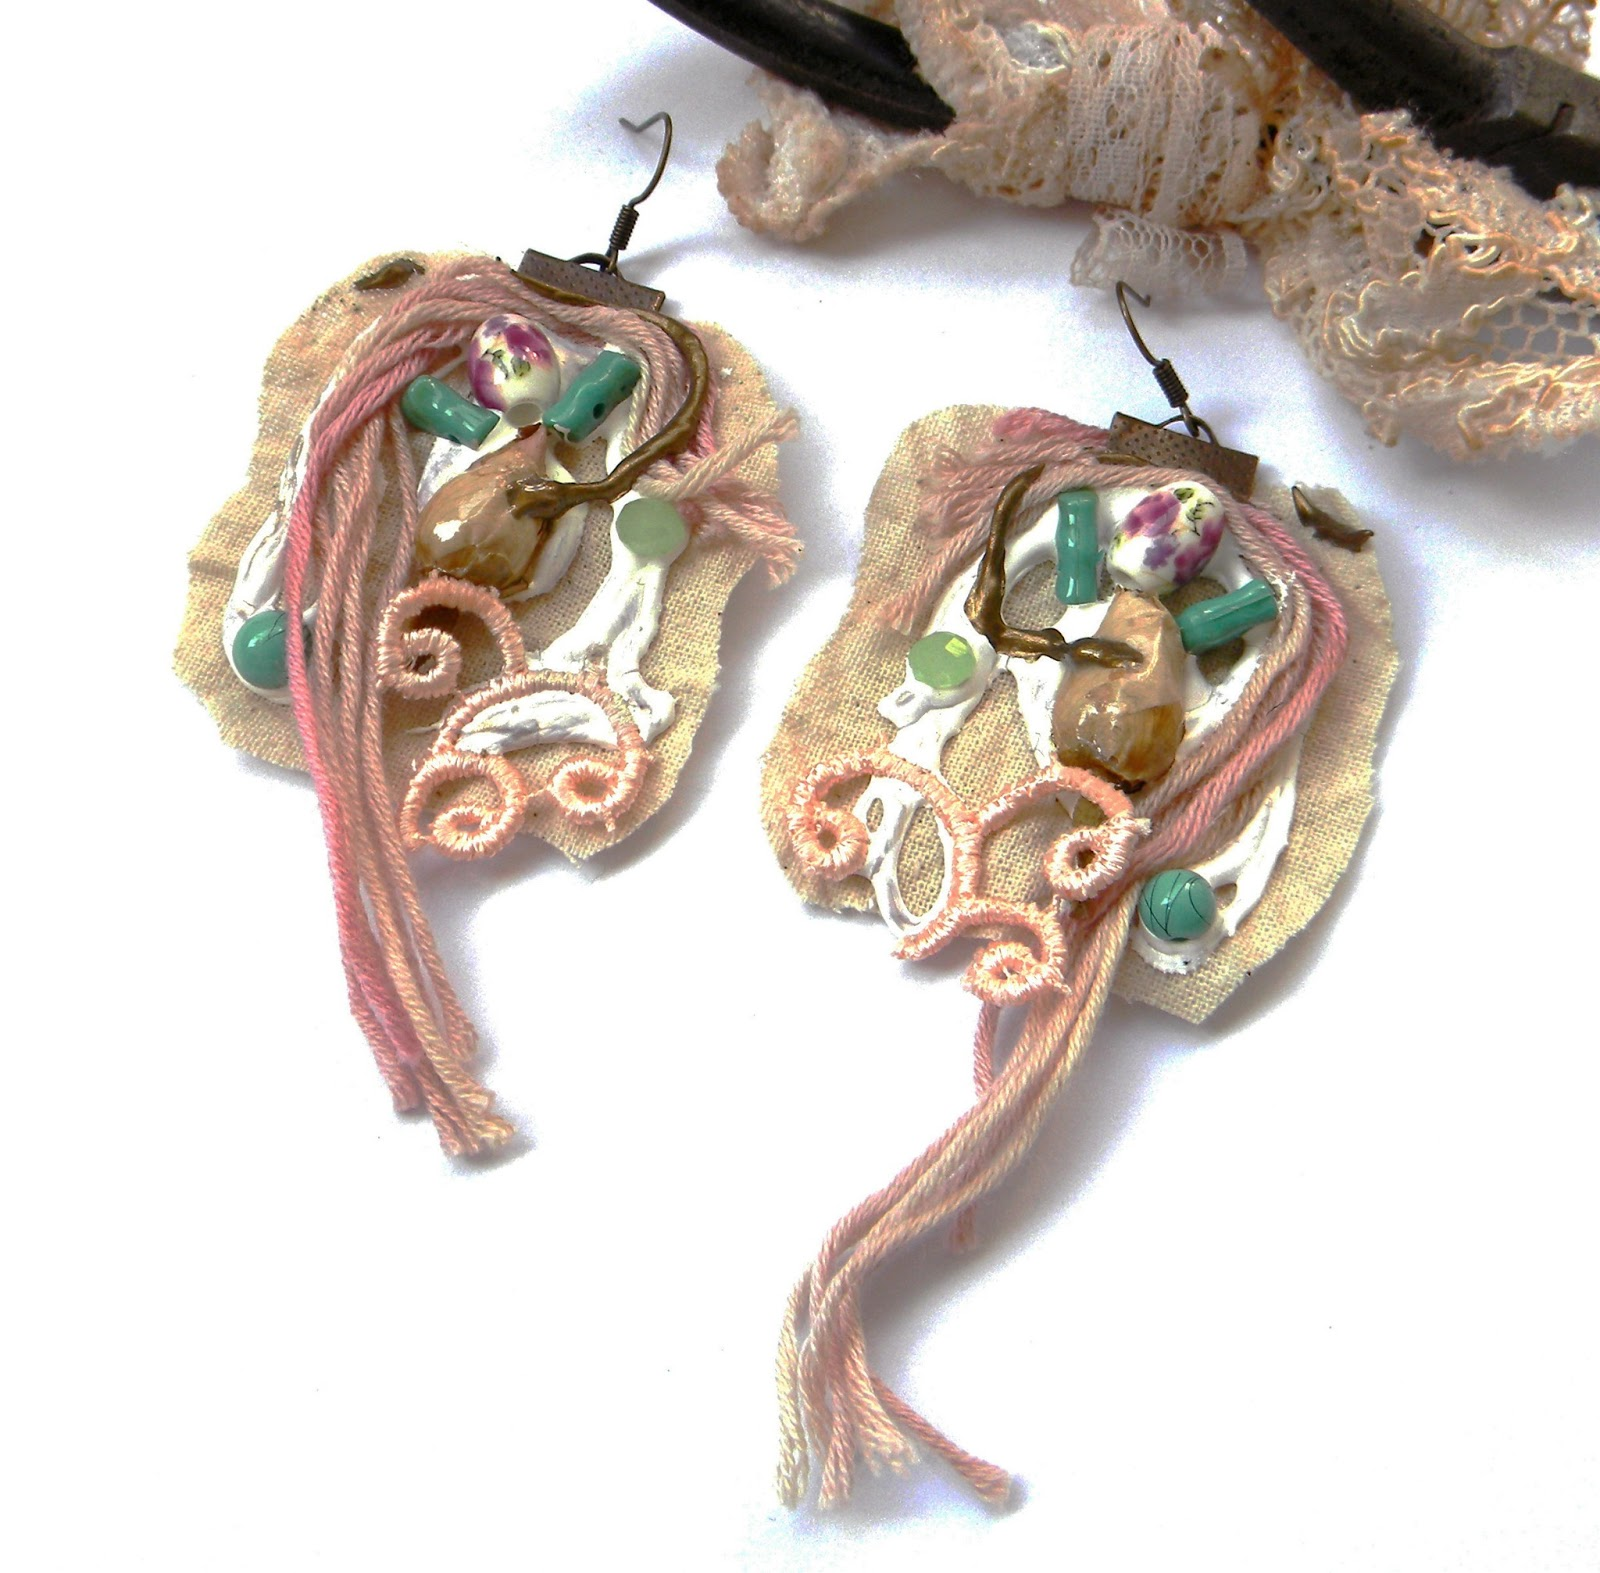 Shabby Eco Friendly Earrings Organic Jewelry Fashion Art Jewelry